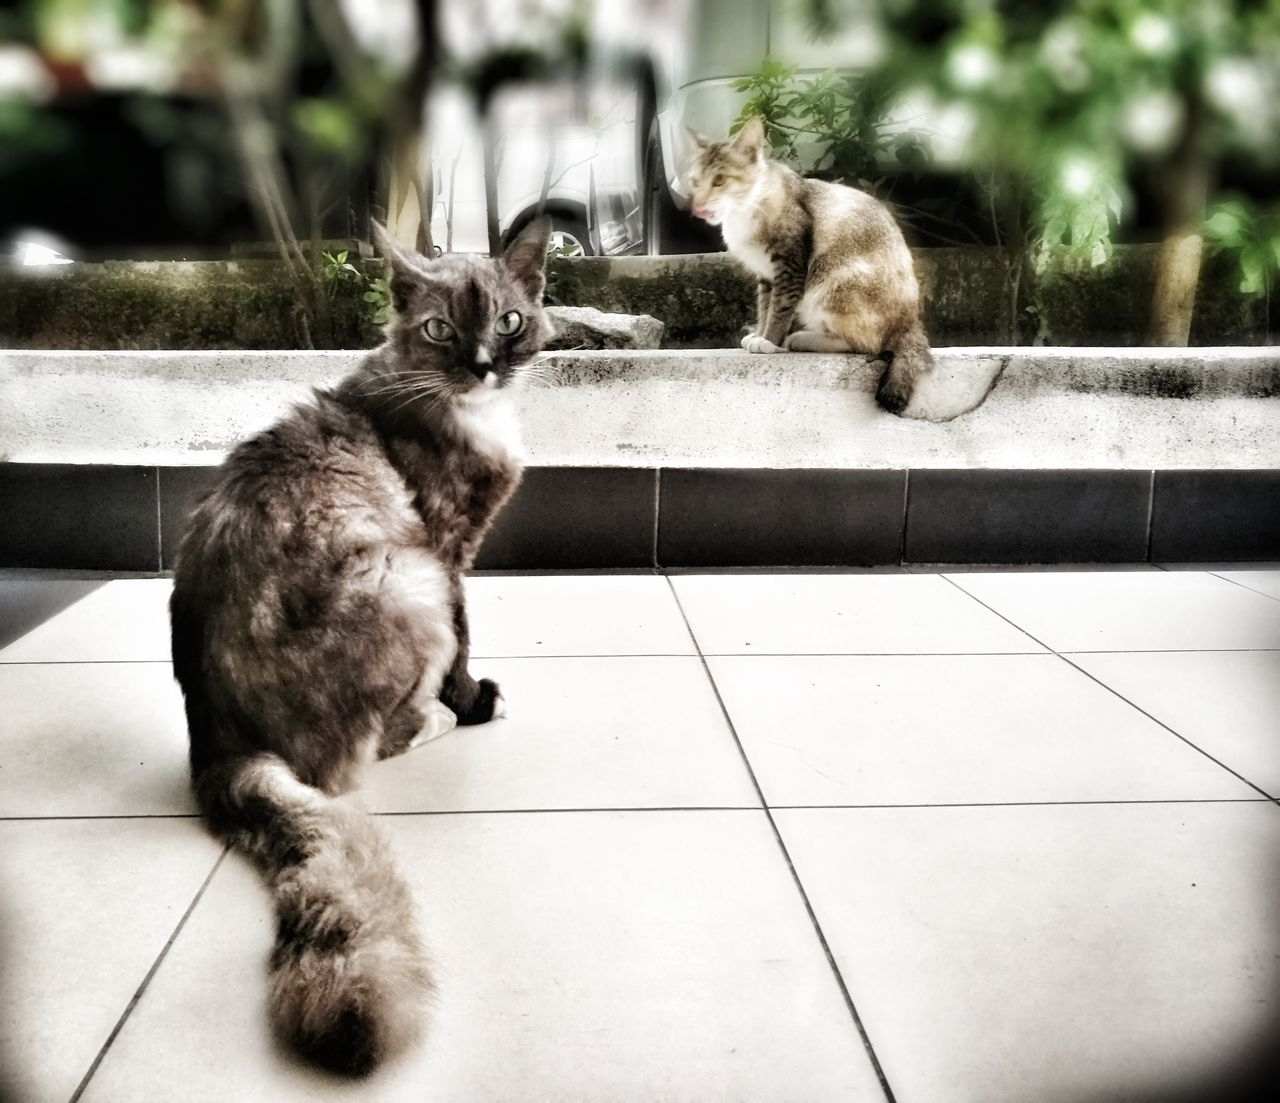 Animal Themes Domestic Animals Domestic Cat Pets HuaweiP9 Huawei P9 Plus Huaweiphotography Homeless Animal Kitten Cat Animal Homeless Cat Hua Wei P9 Plus Homeless Cats Homeless Homeless Kitten Homelessness  Outdoors Outdoor Photography Mammal